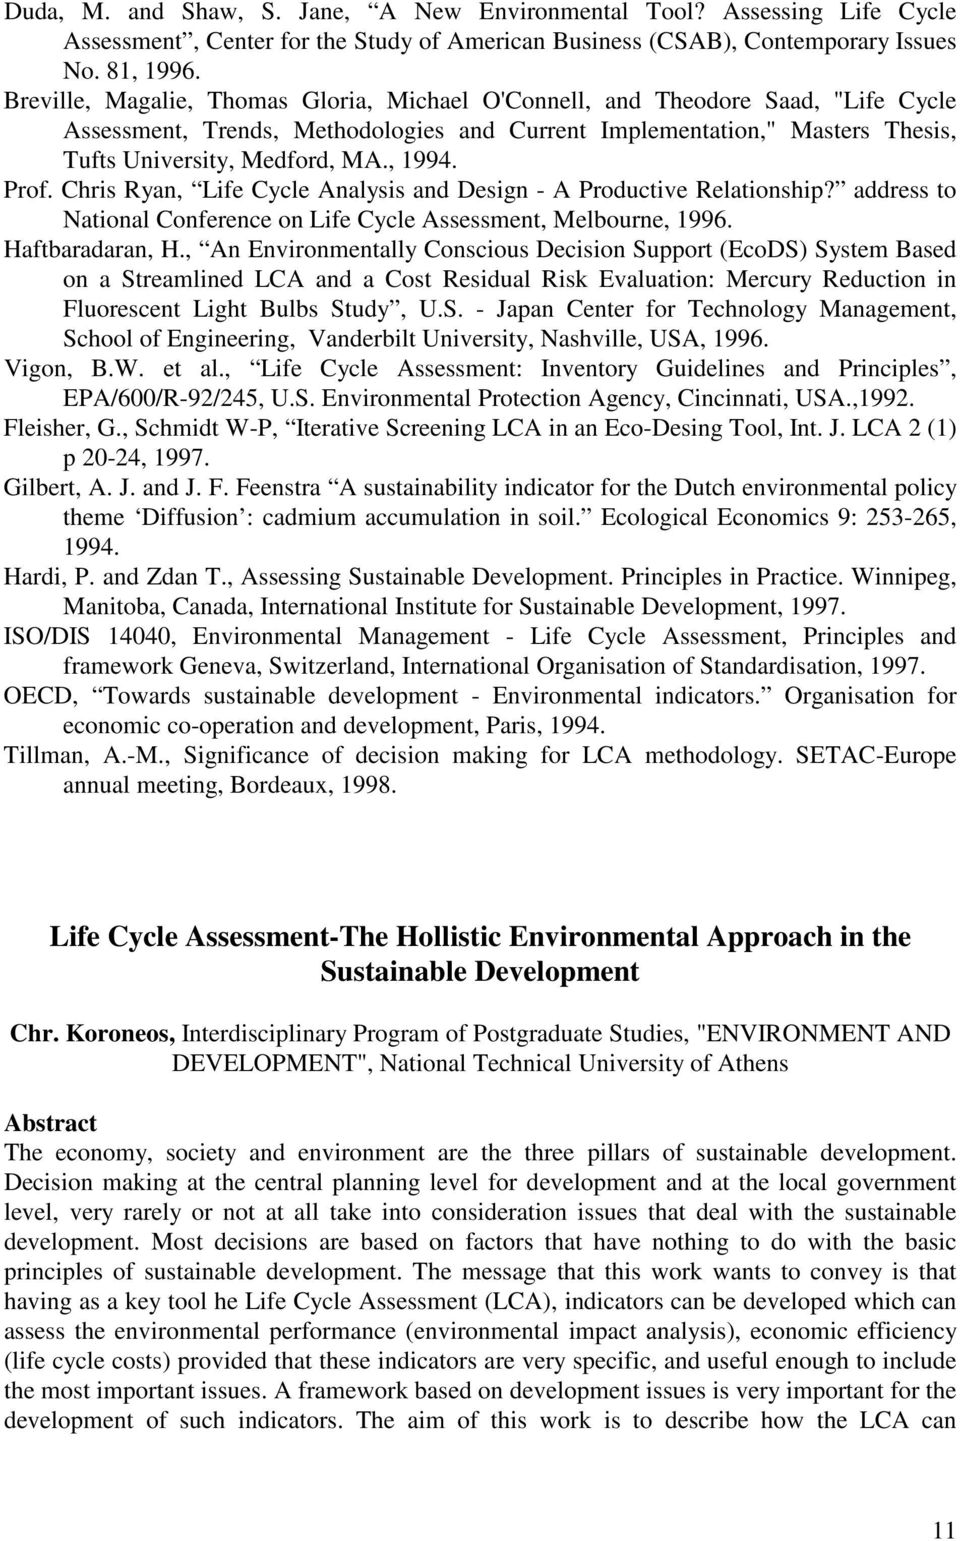 Prof. Chris Ryan, Life Cycle Analysis and Design - A Productive Relationship? address to National Conference on Life Cycle Assessment, Melbourne, 1996. Haftbaradaran, H.